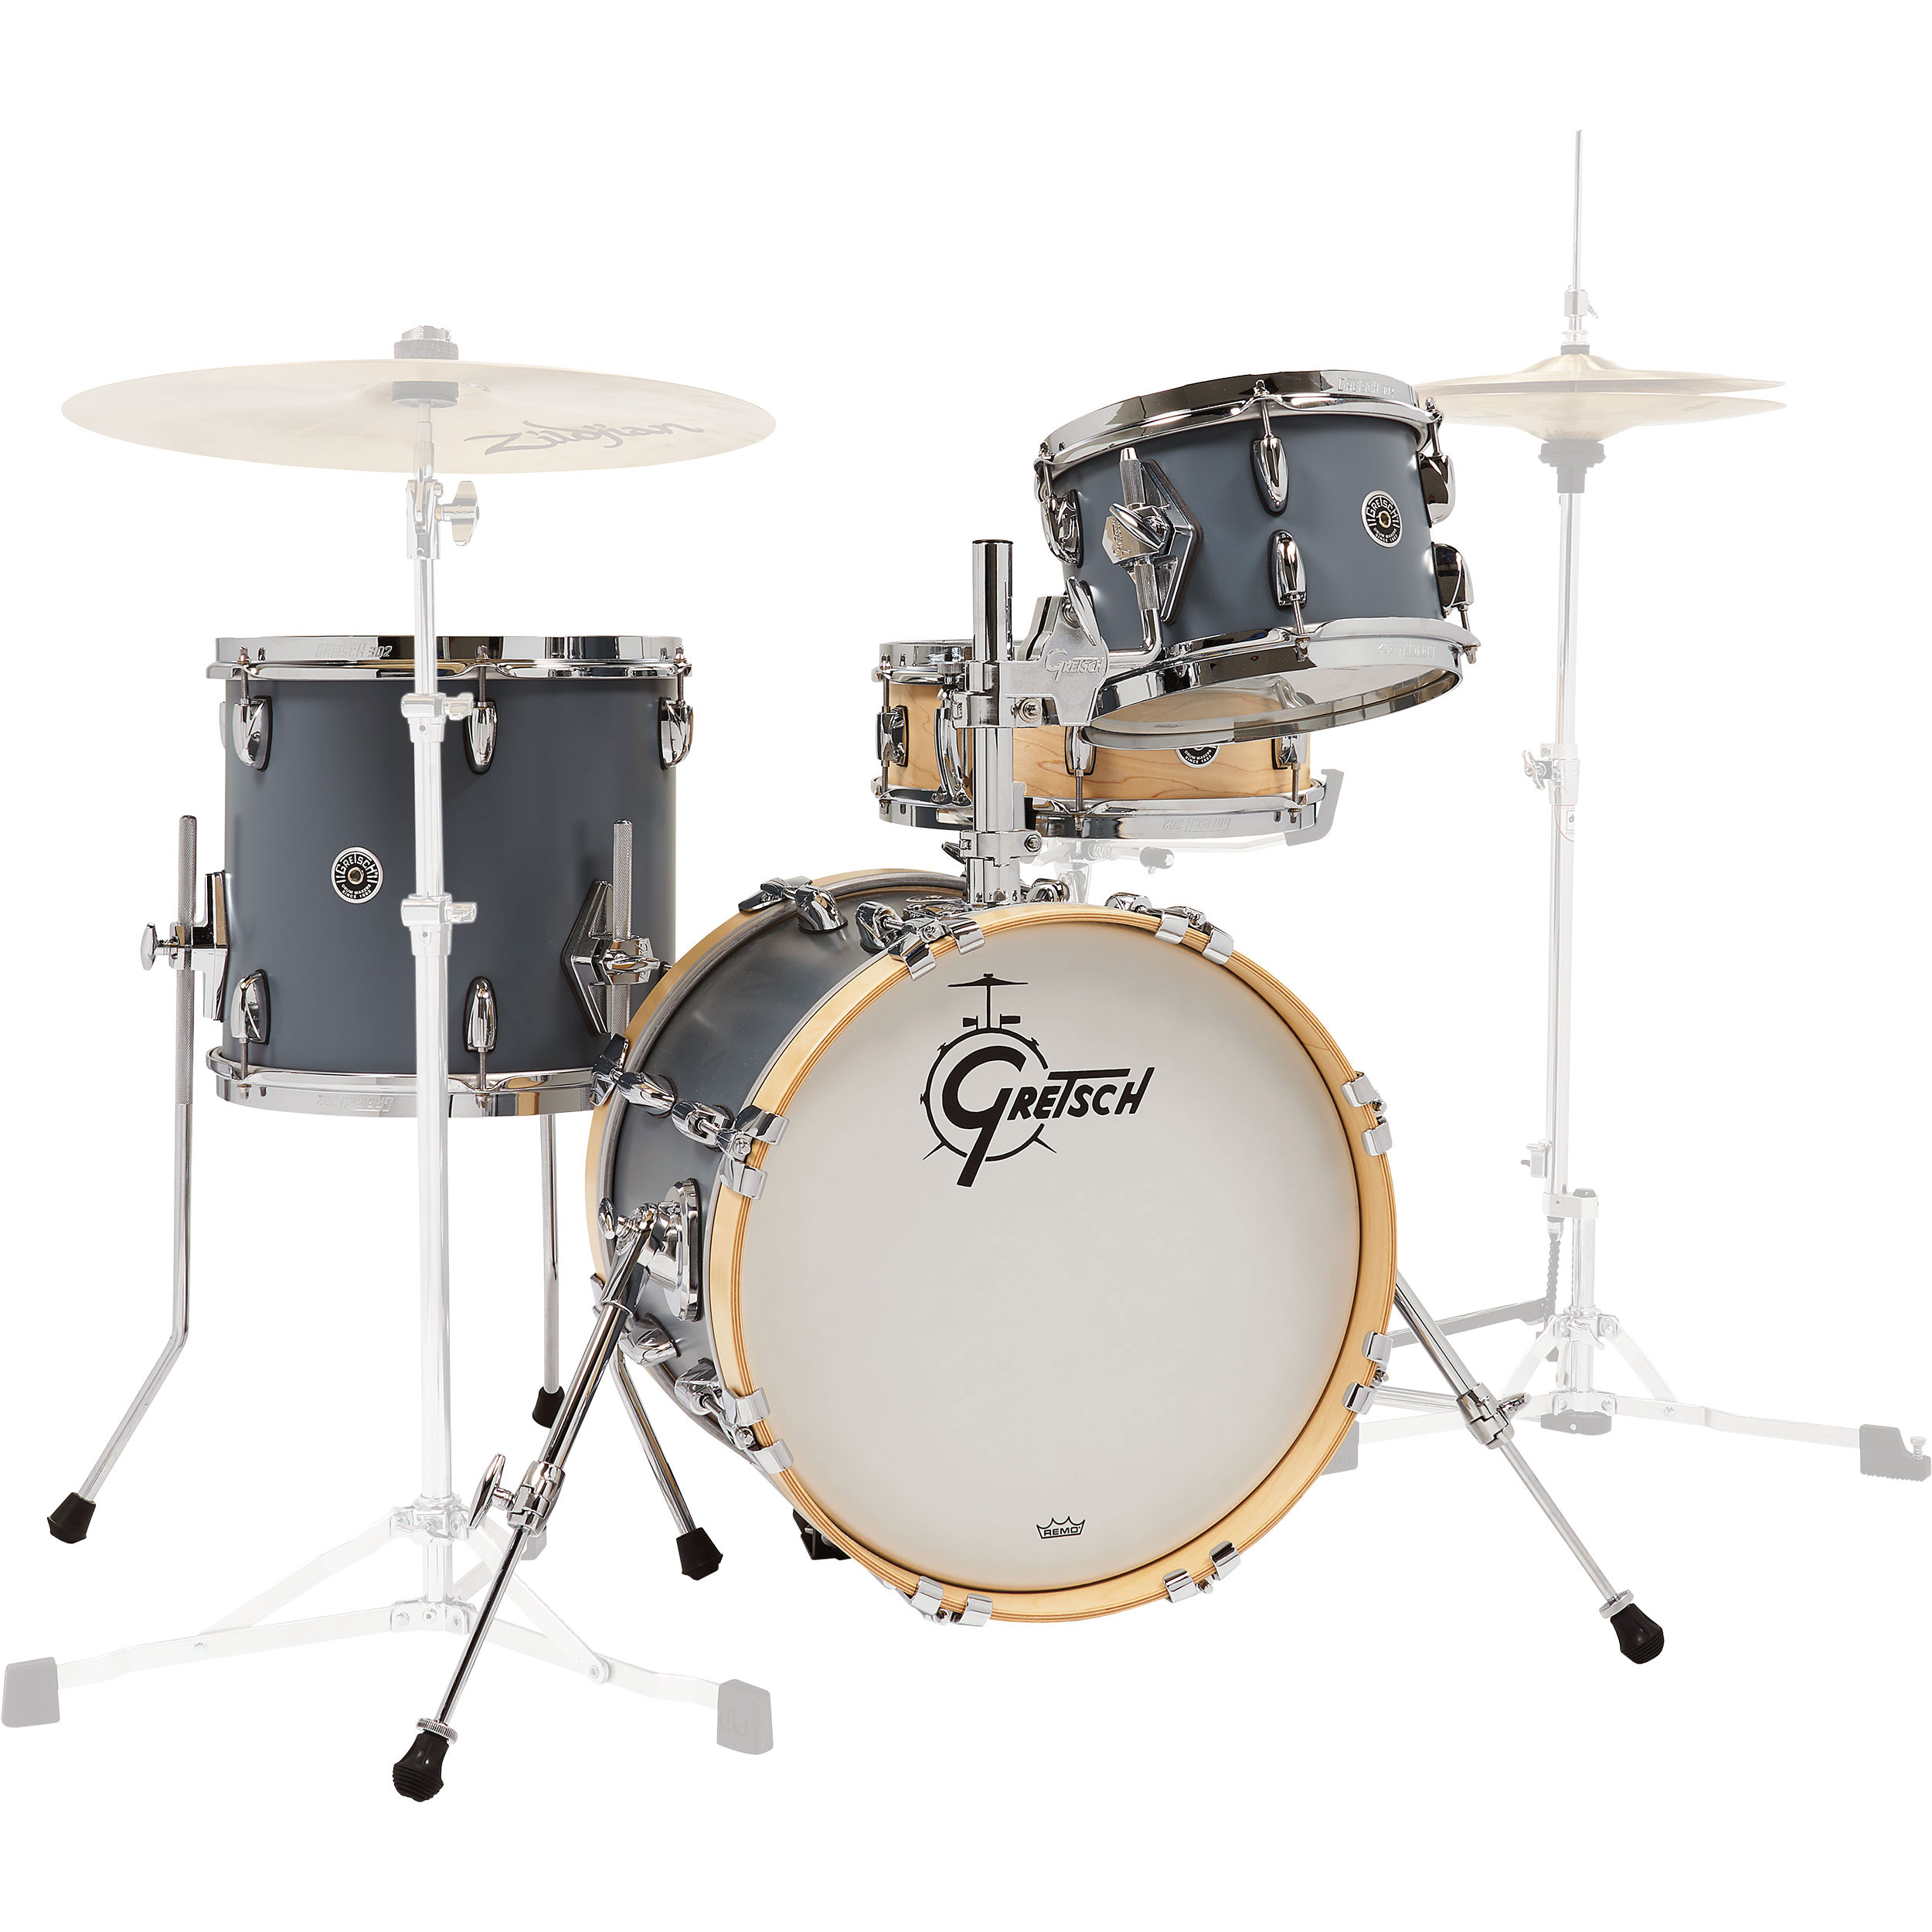 "Gretsch Brooklyn Micro Kit Drum Set Shell Pack (16"" Bass, 10/13"" Toms, 13"" Snare) in Satin Gray/Satin Natural"